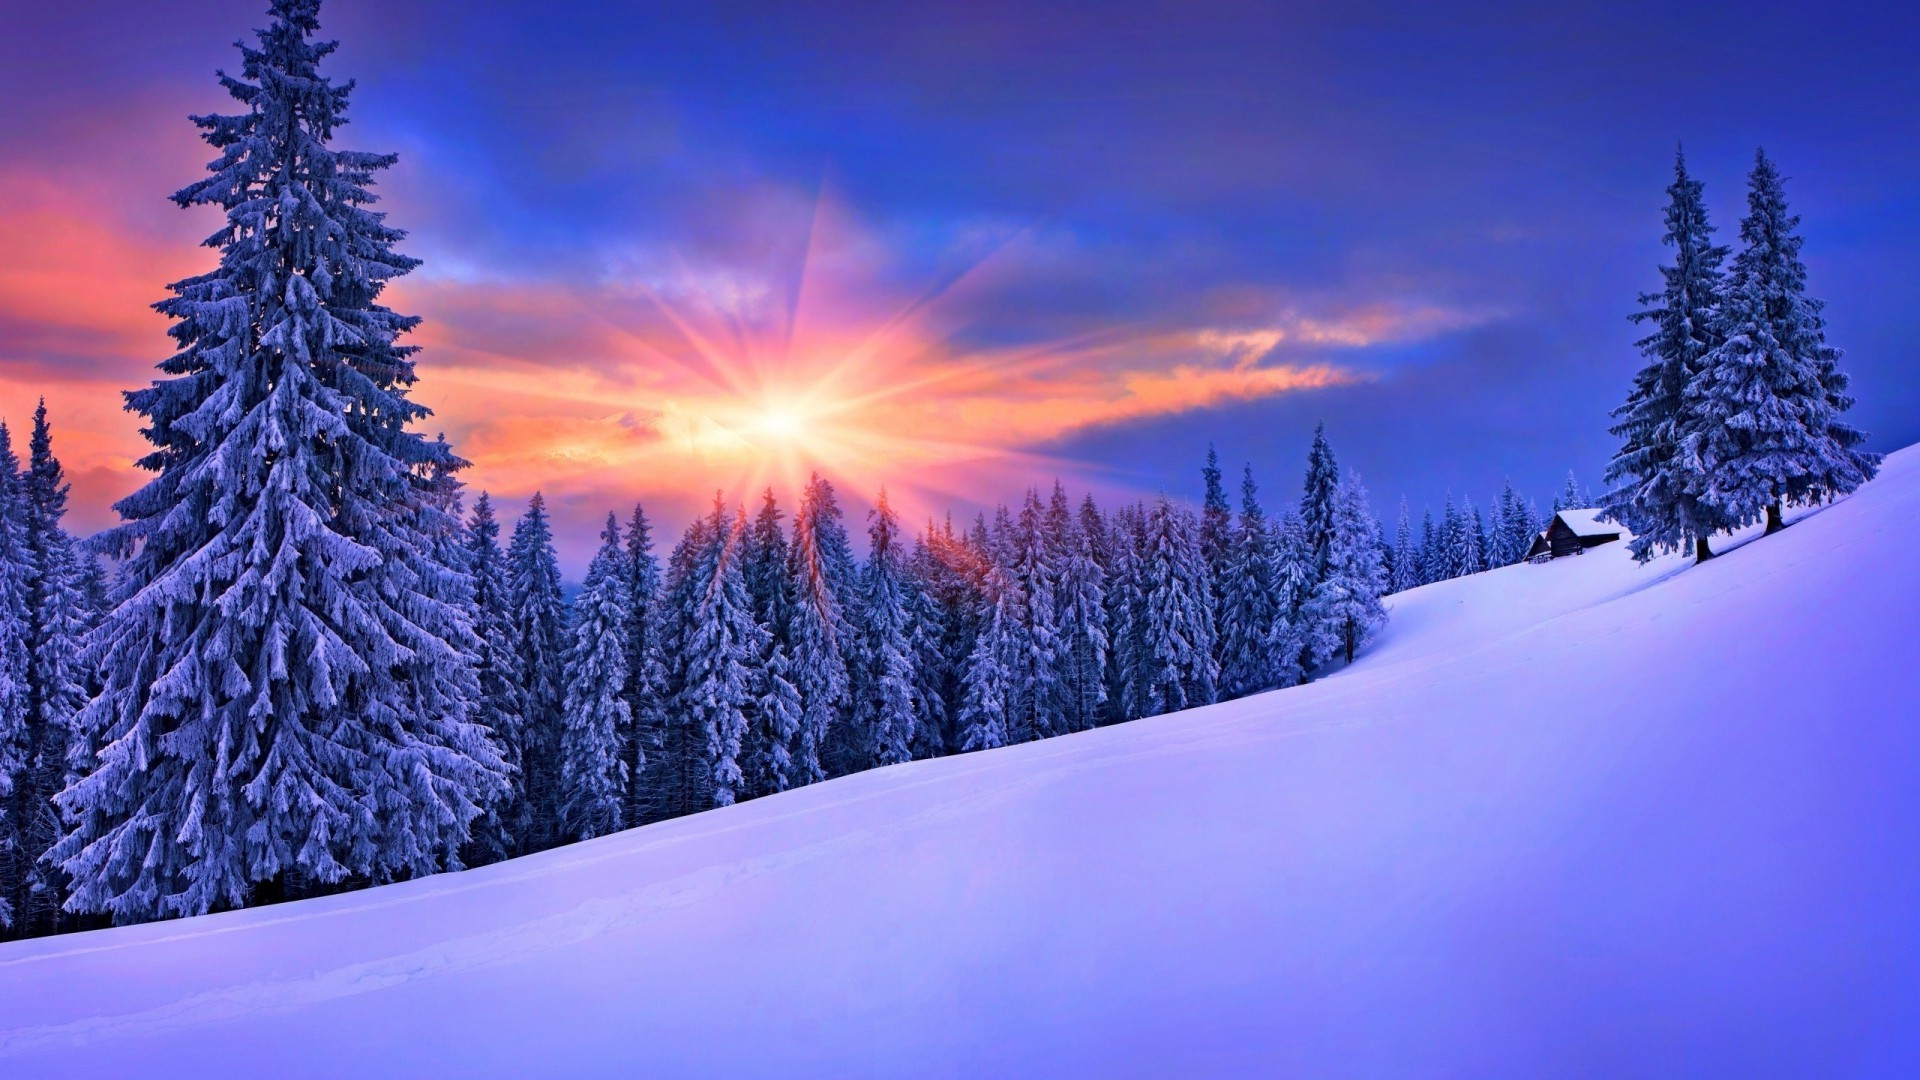 Desktop Wallpaper Winter Landscapes (46+ Images